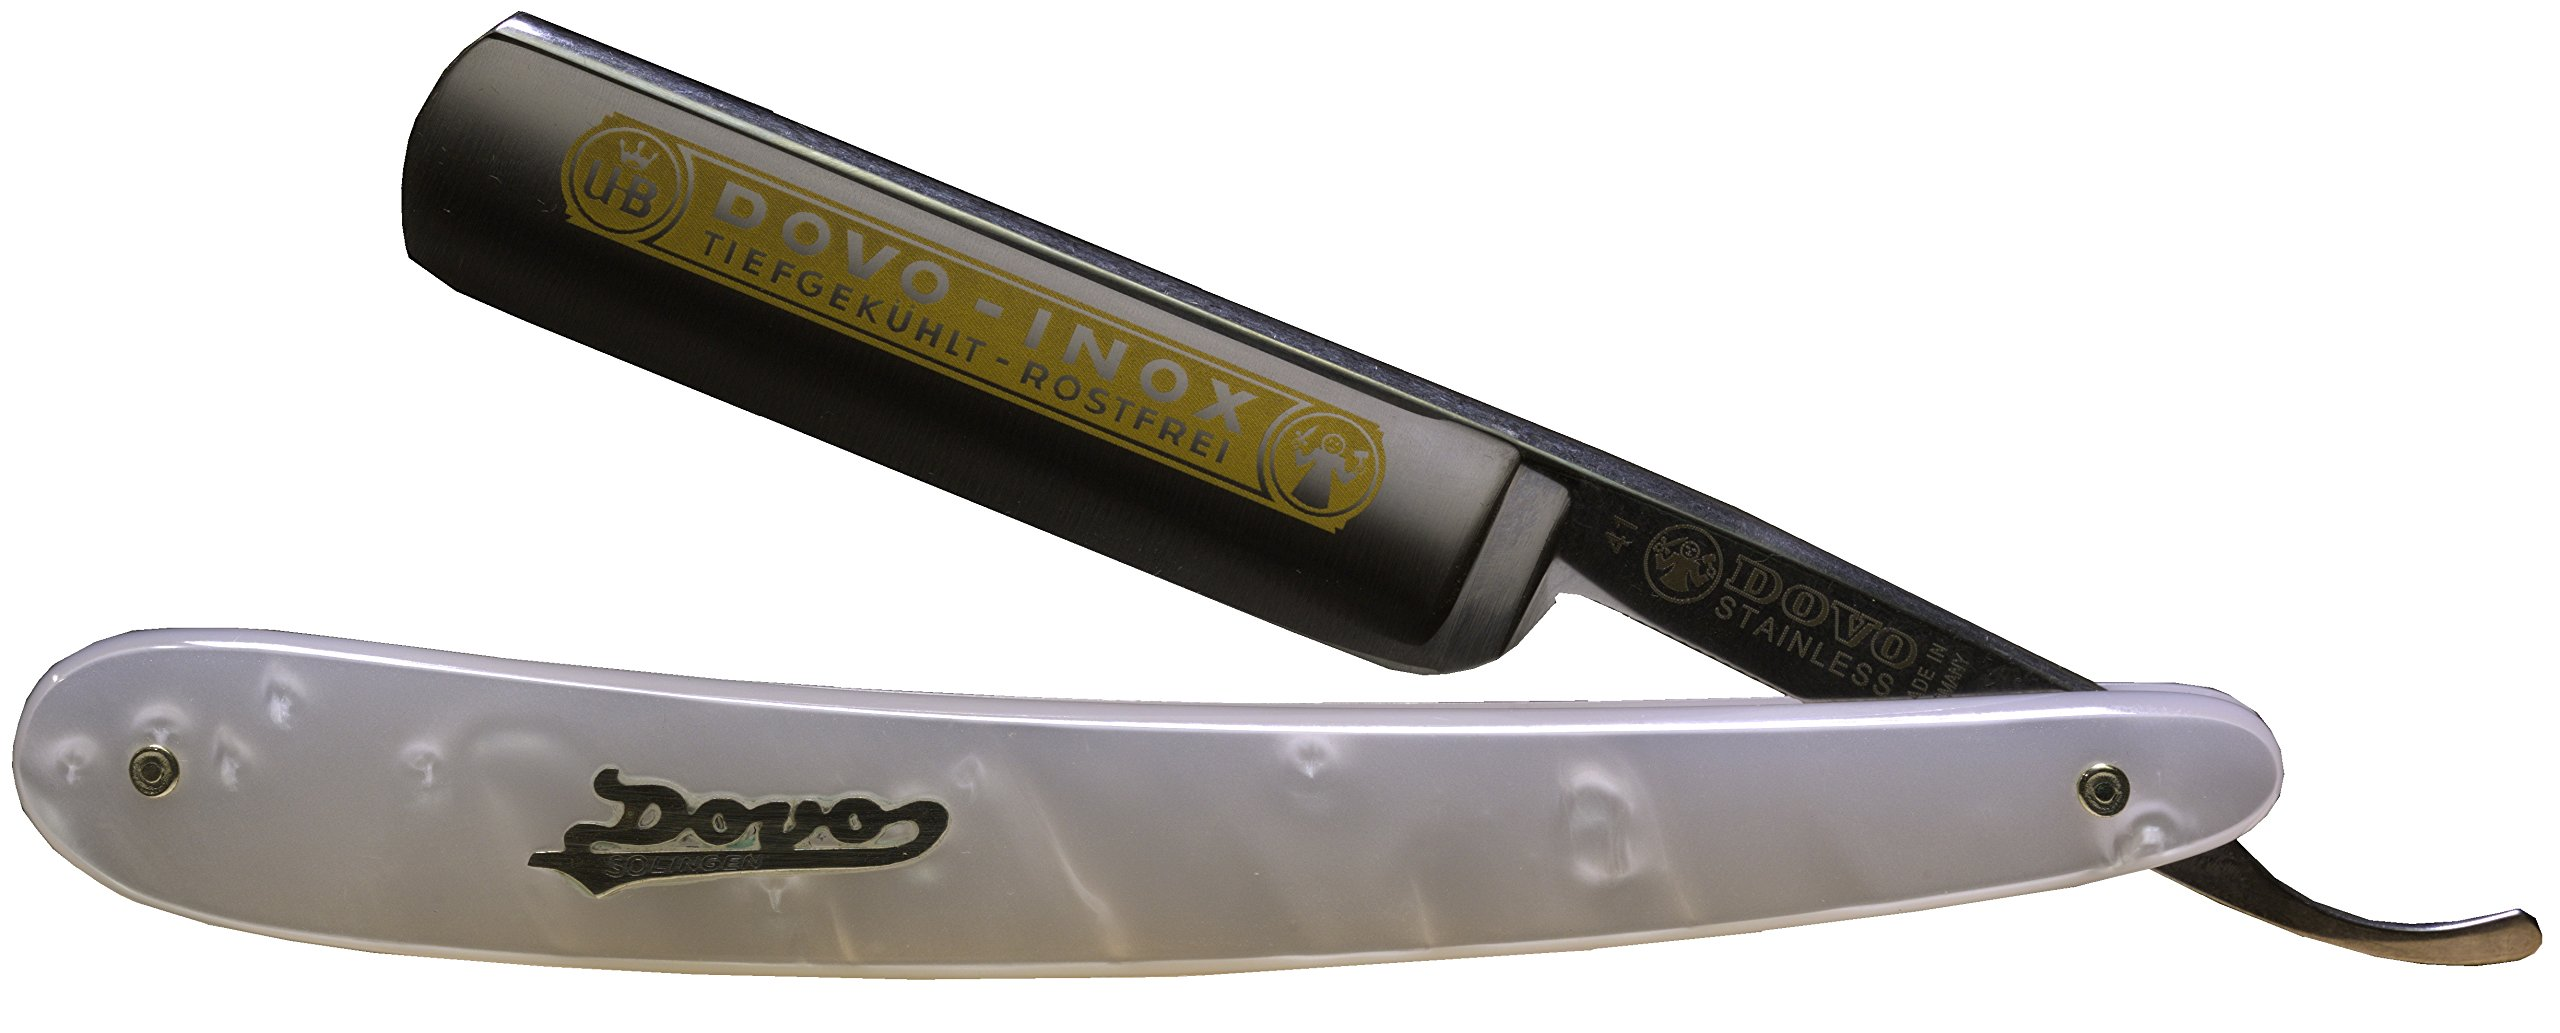 Dovo 415815 5/8'' INOX Stainless Steel Straight Razor with Shave Ready Option, Imitation Mother of Pearl Resin Scales (Shave Ready, Unsealed)